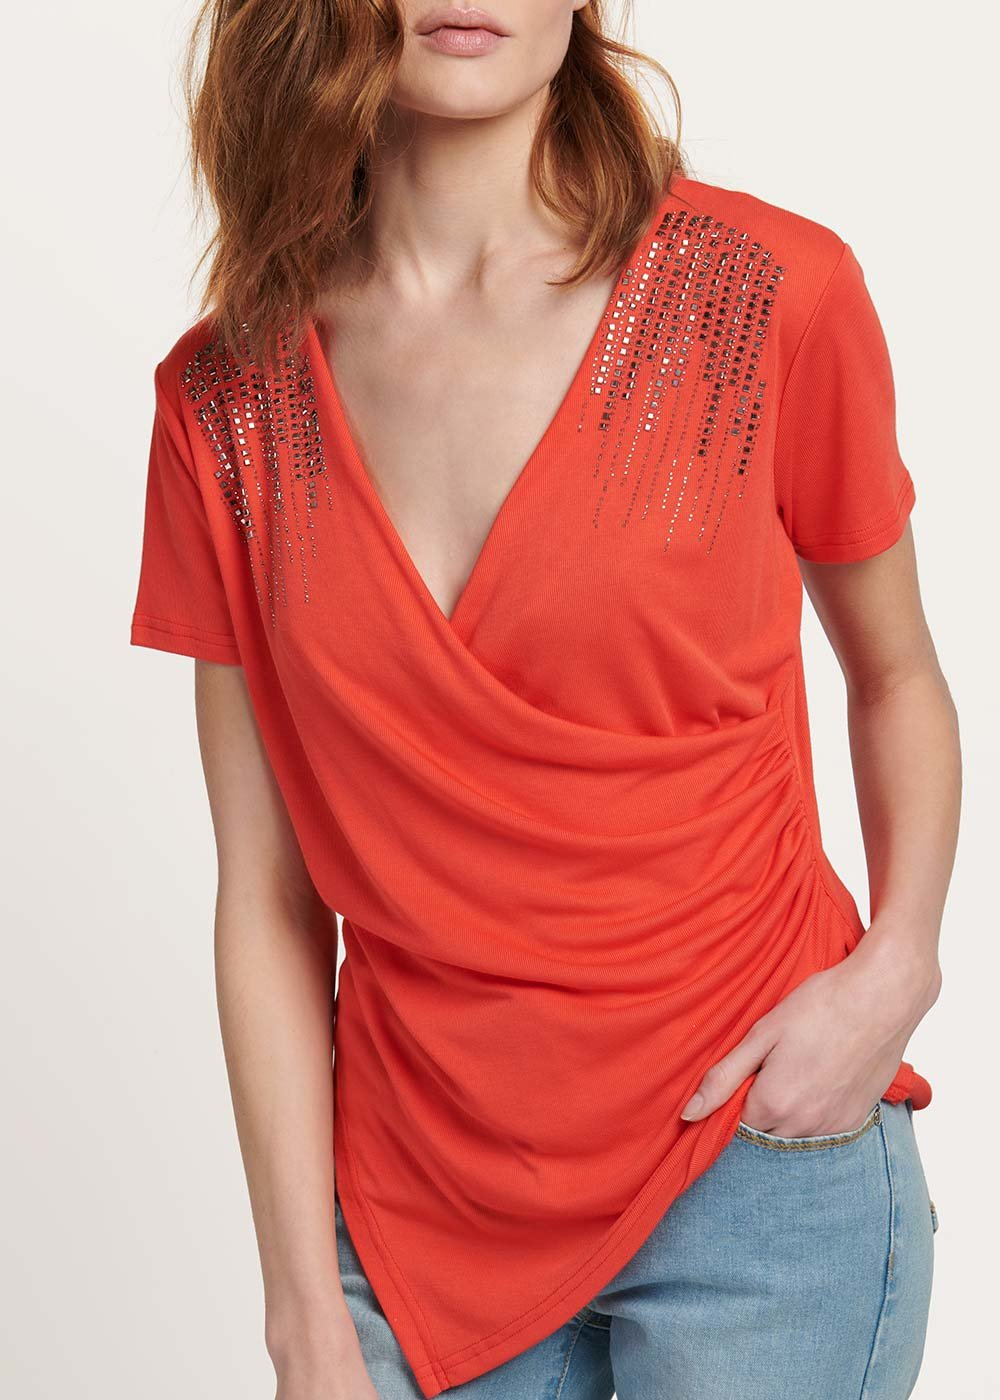 Serena t-shirt with crystals details - Lobster - Woman